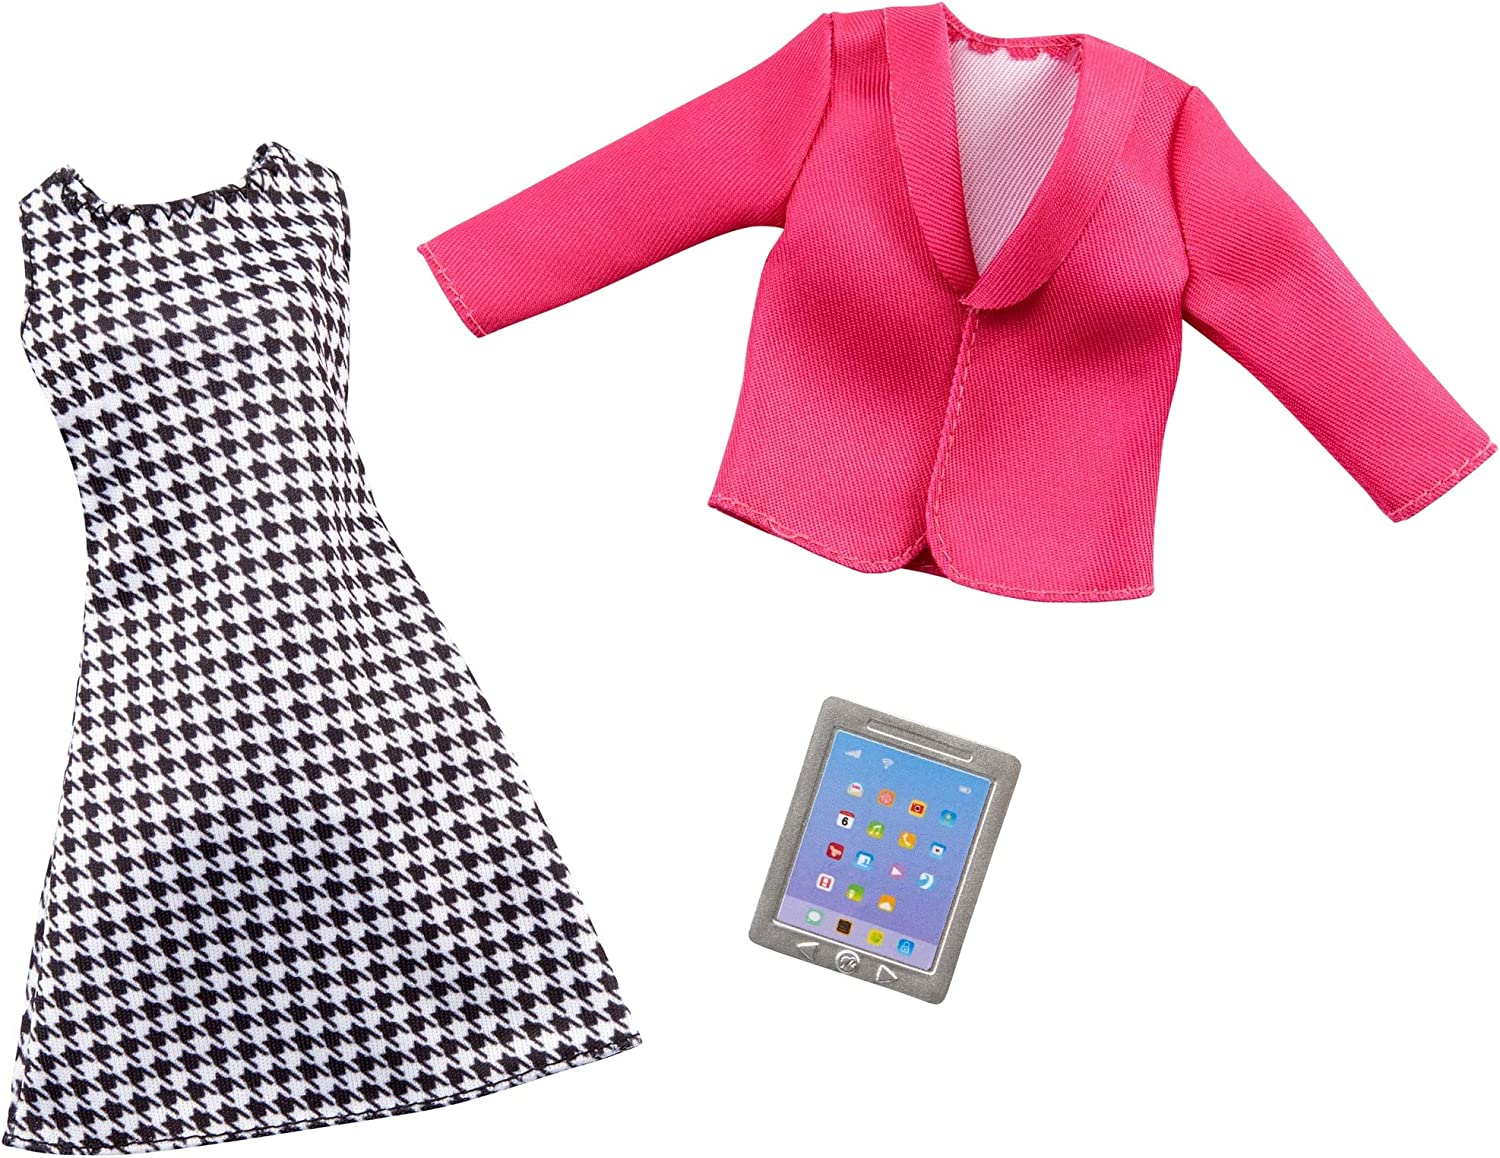 Barbie Clothes - Career Outfit for Barbie Doll, Business Executive Look with Tablet, Gift for 3 to 8 Year Olds